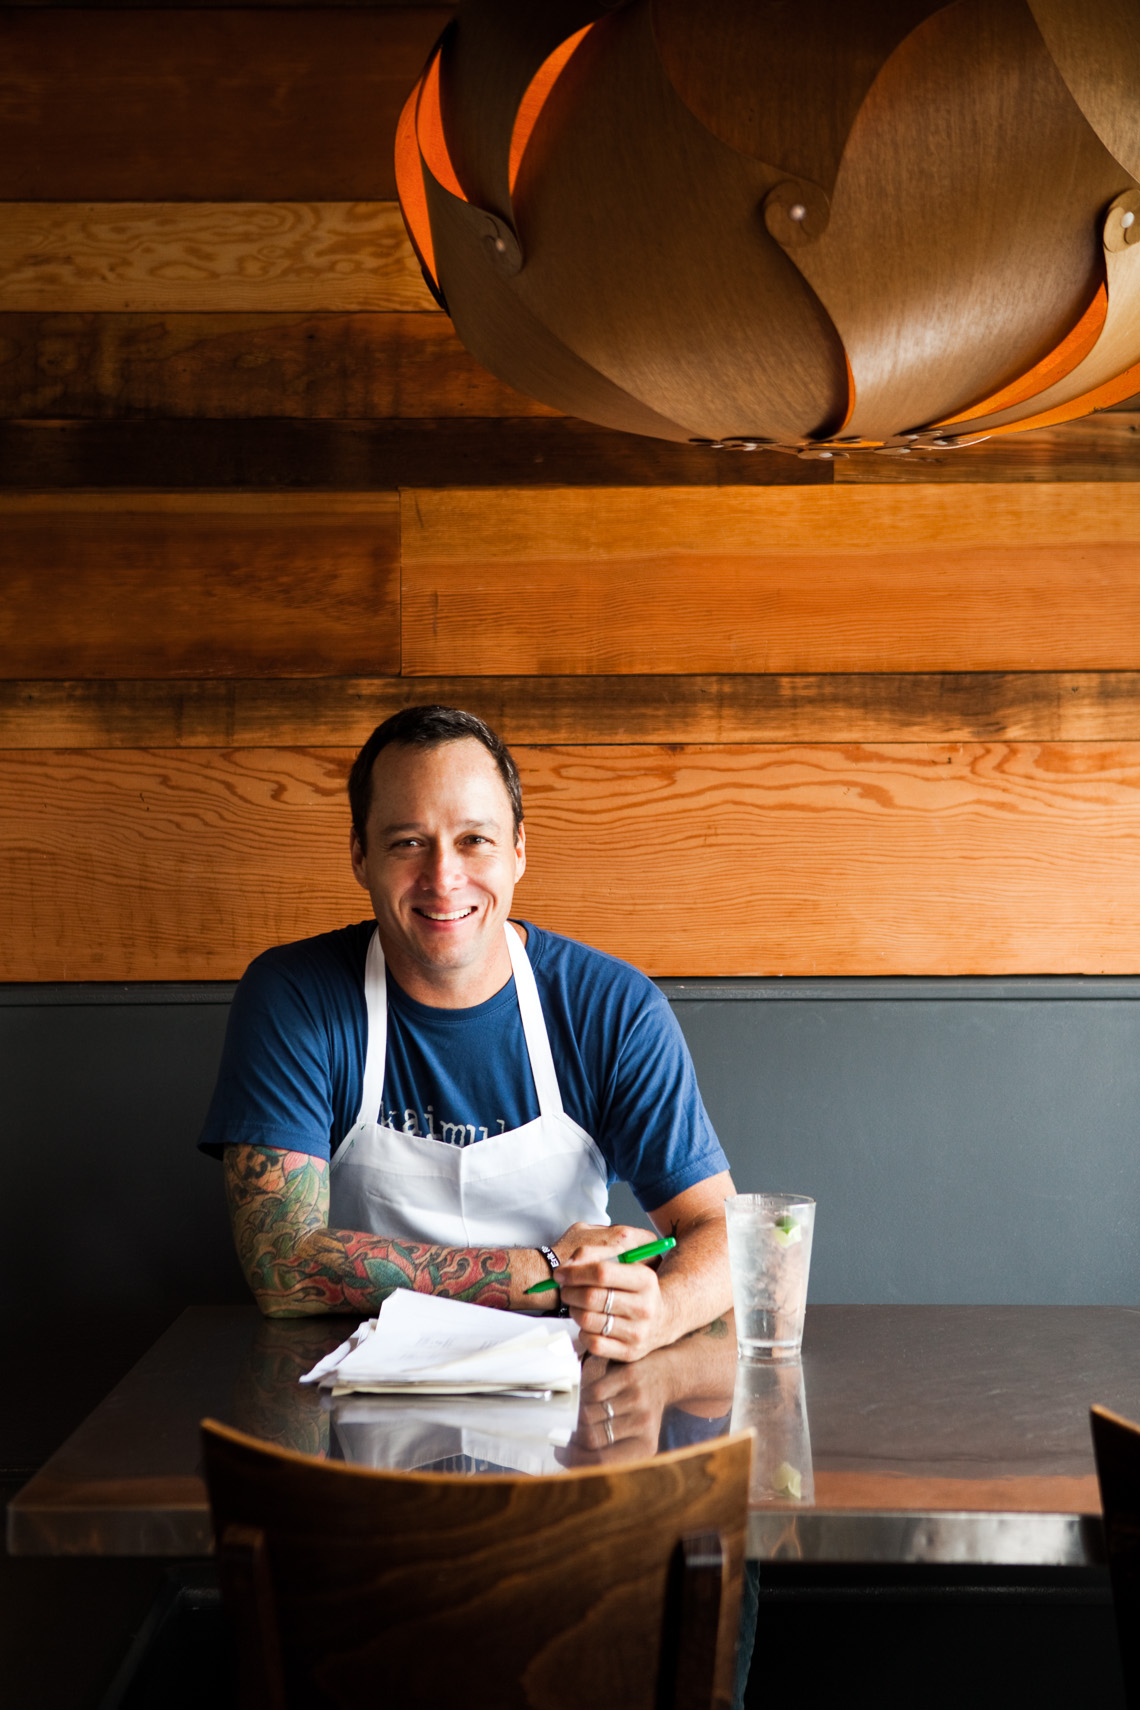 Chef Ed Kenney of Town in Honolulu, Hawaii.